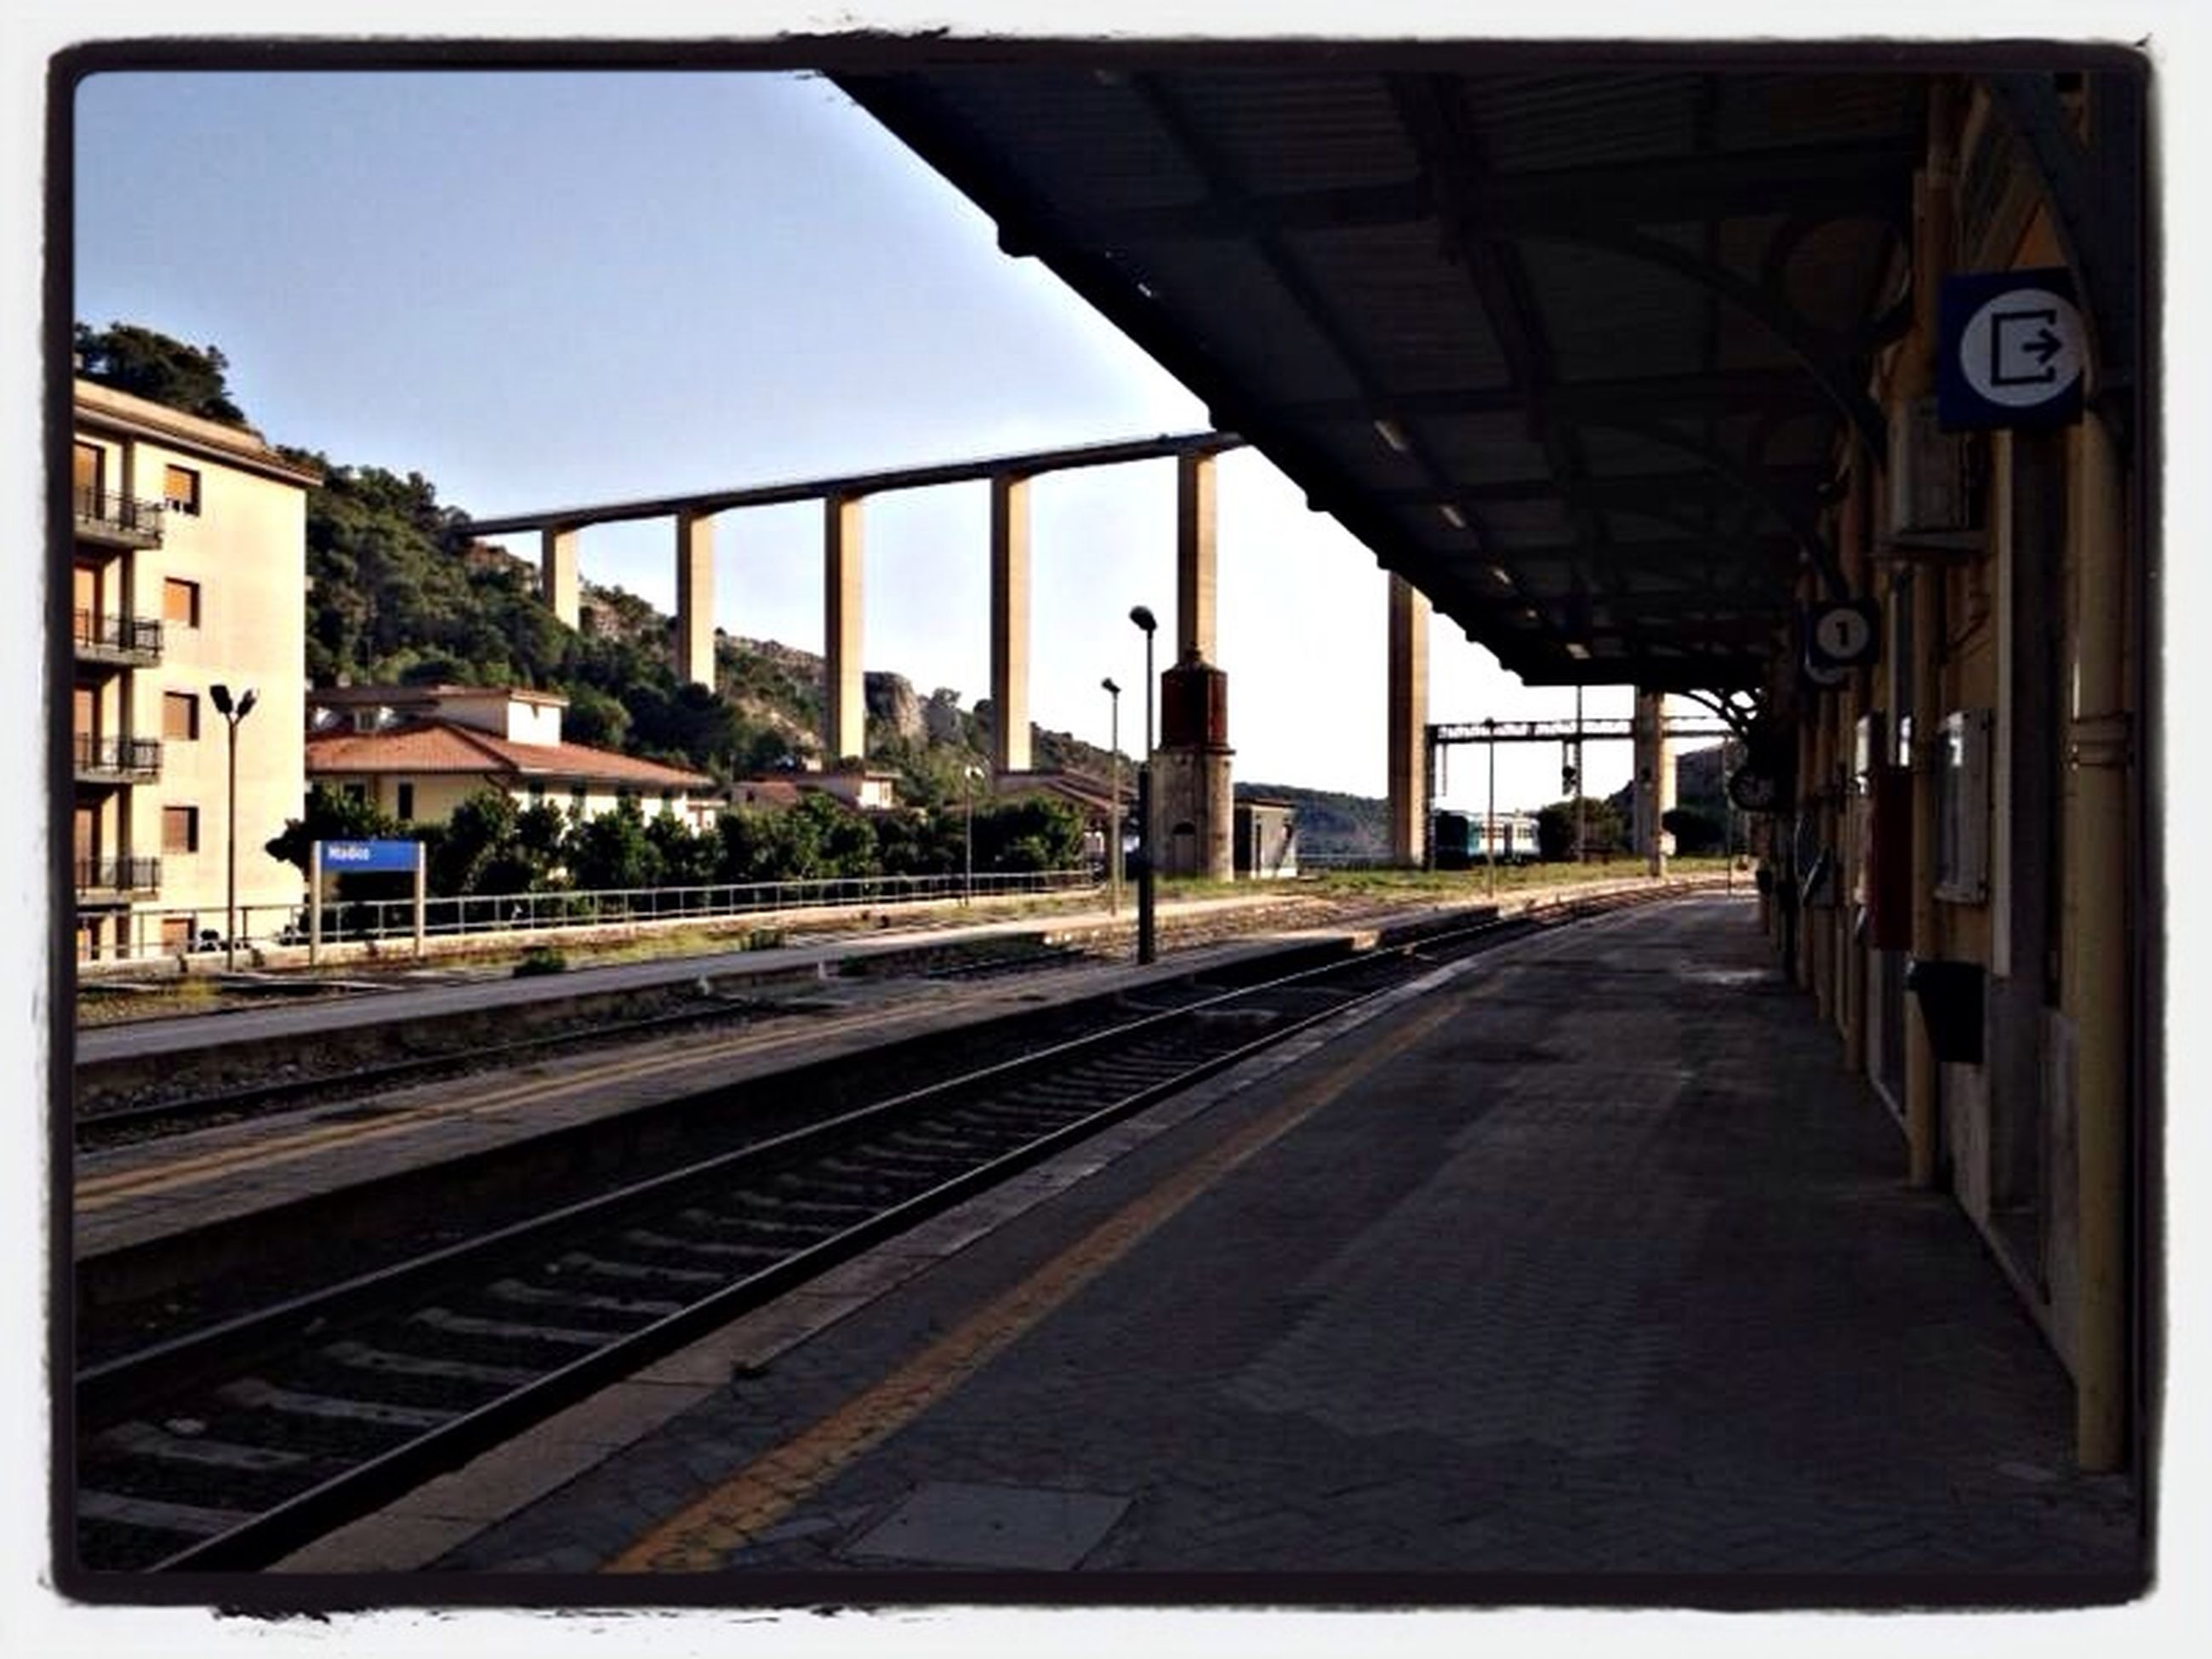 railroad track, transportation, rail transportation, architecture, built structure, transfer print, public transportation, railroad station platform, railroad station, the way forward, diminishing perspective, building exterior, auto post production filter, clear sky, vanishing point, sky, train - vehicle, railway track, empty, long